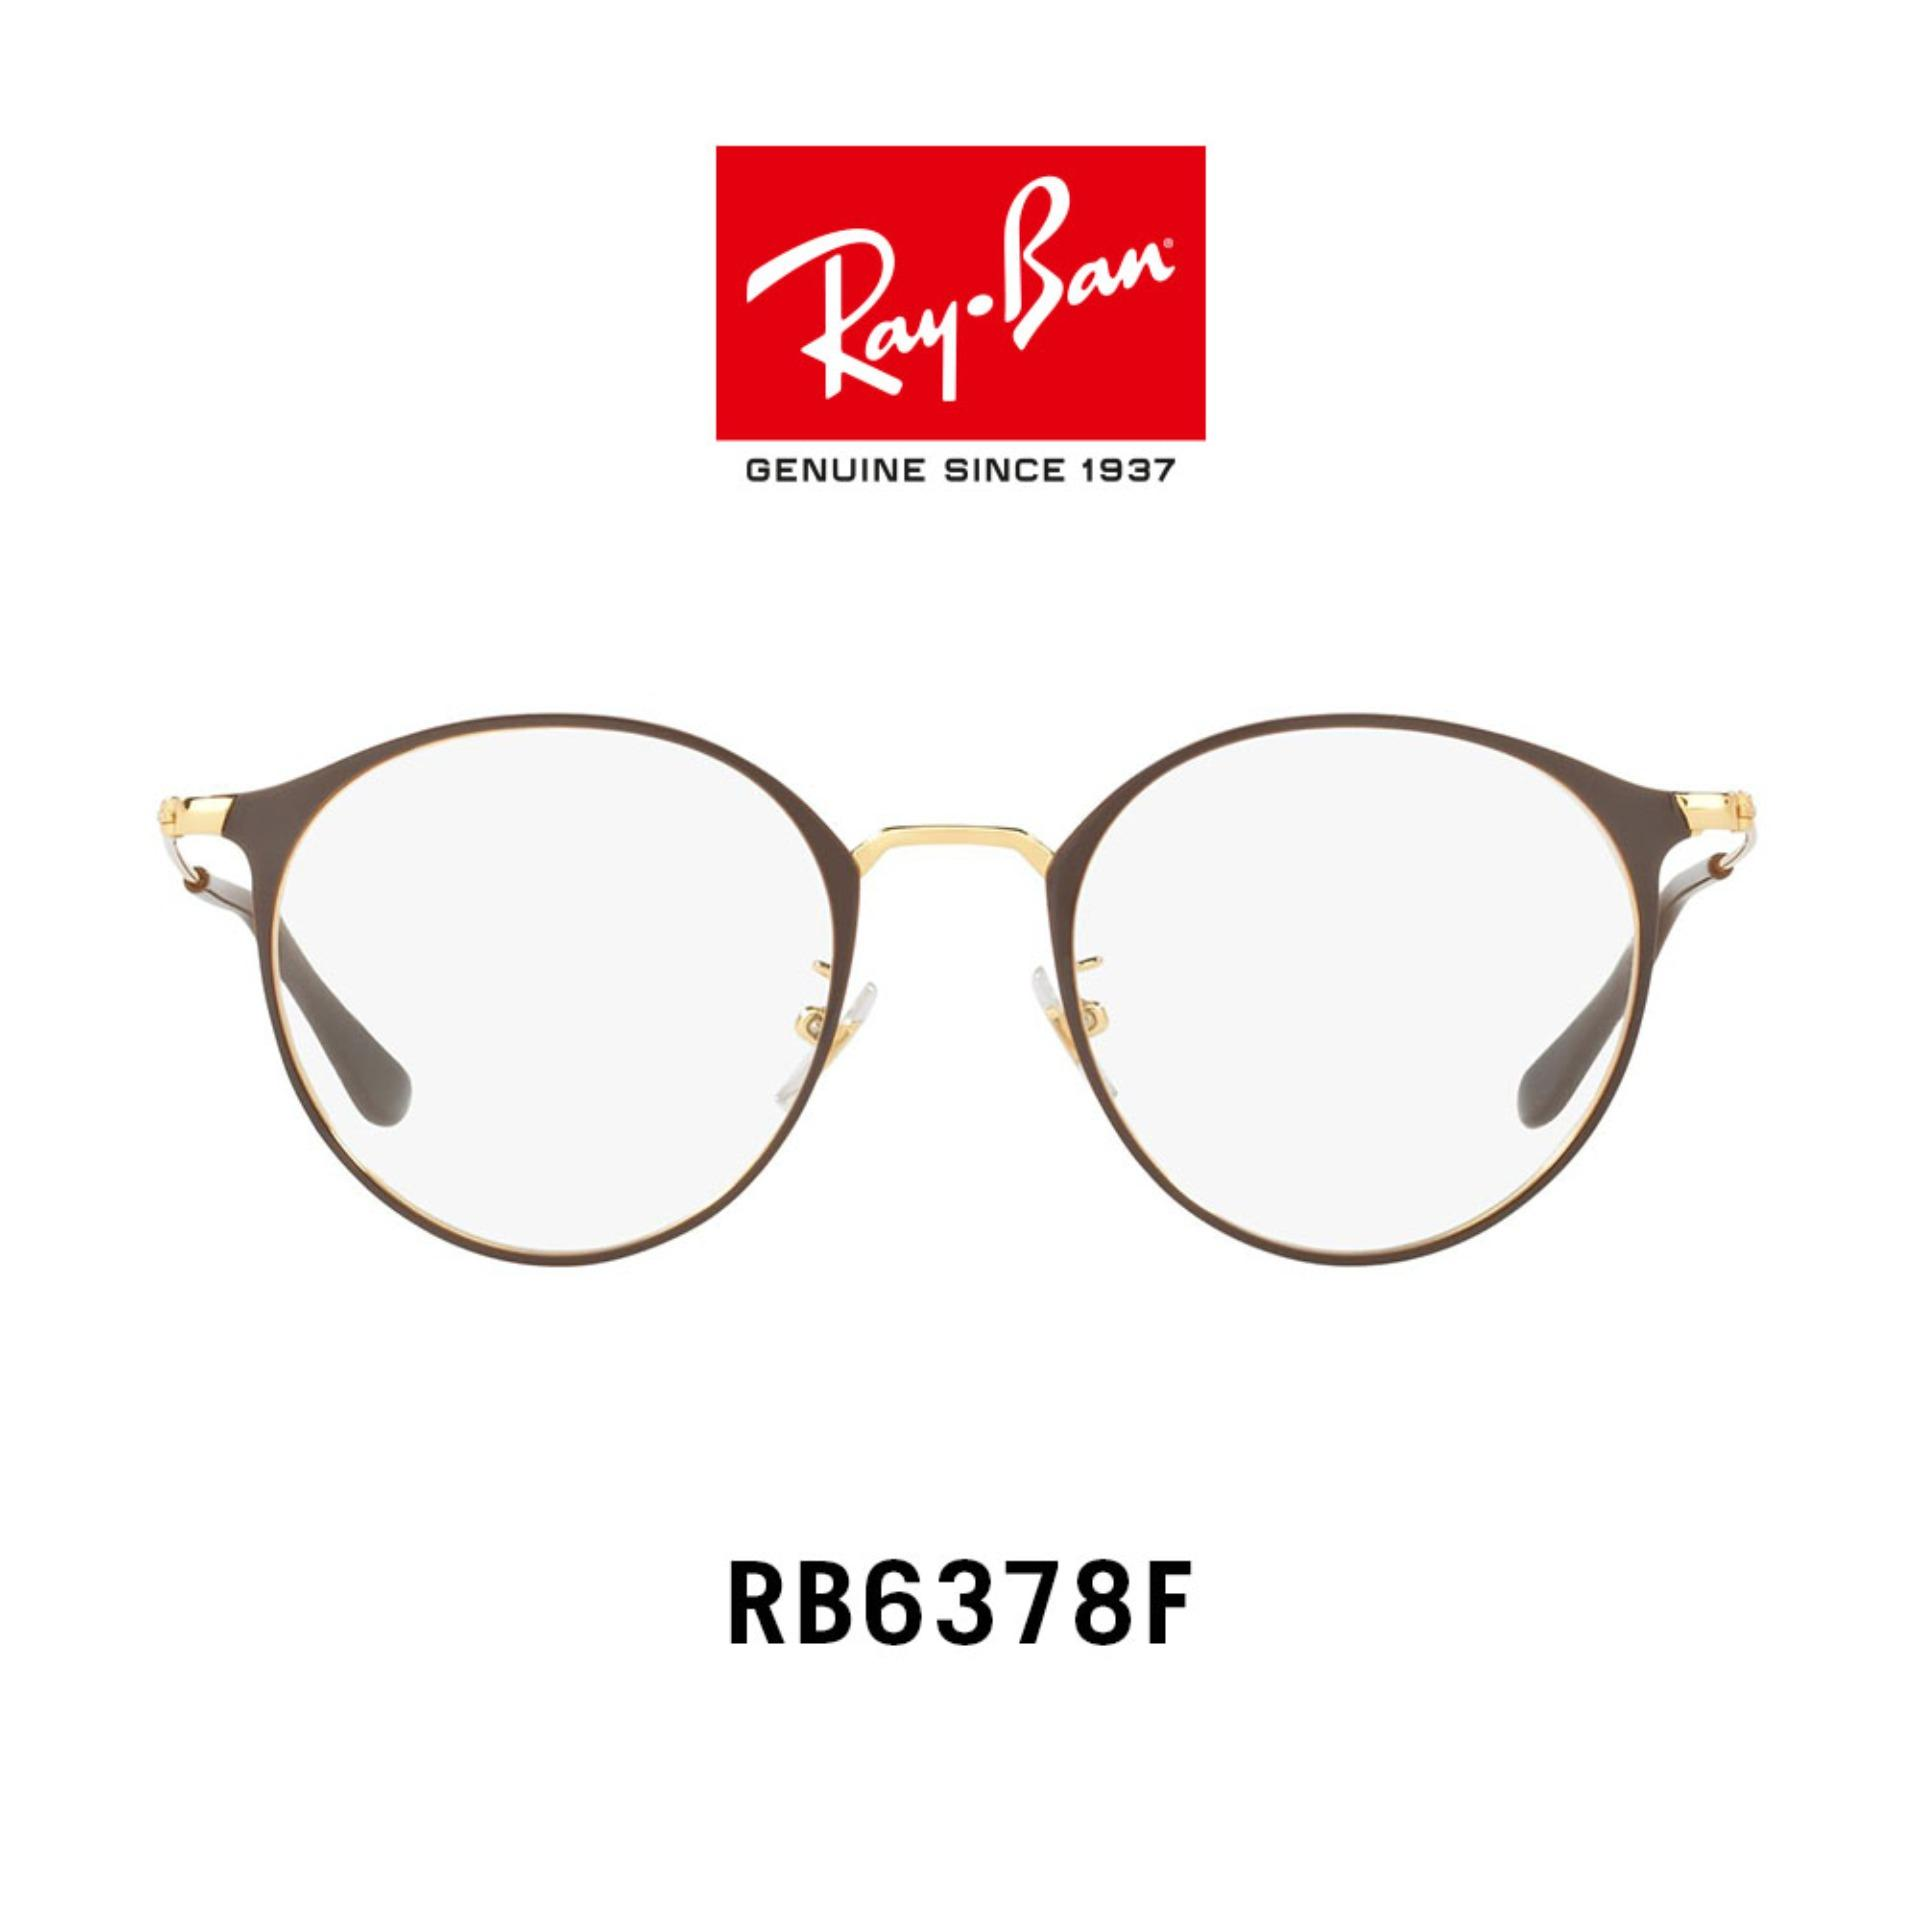 d1b9db9bbea8 Ray Ban Philippines  Ray Ban price list - Shades   Sunglasses for ...